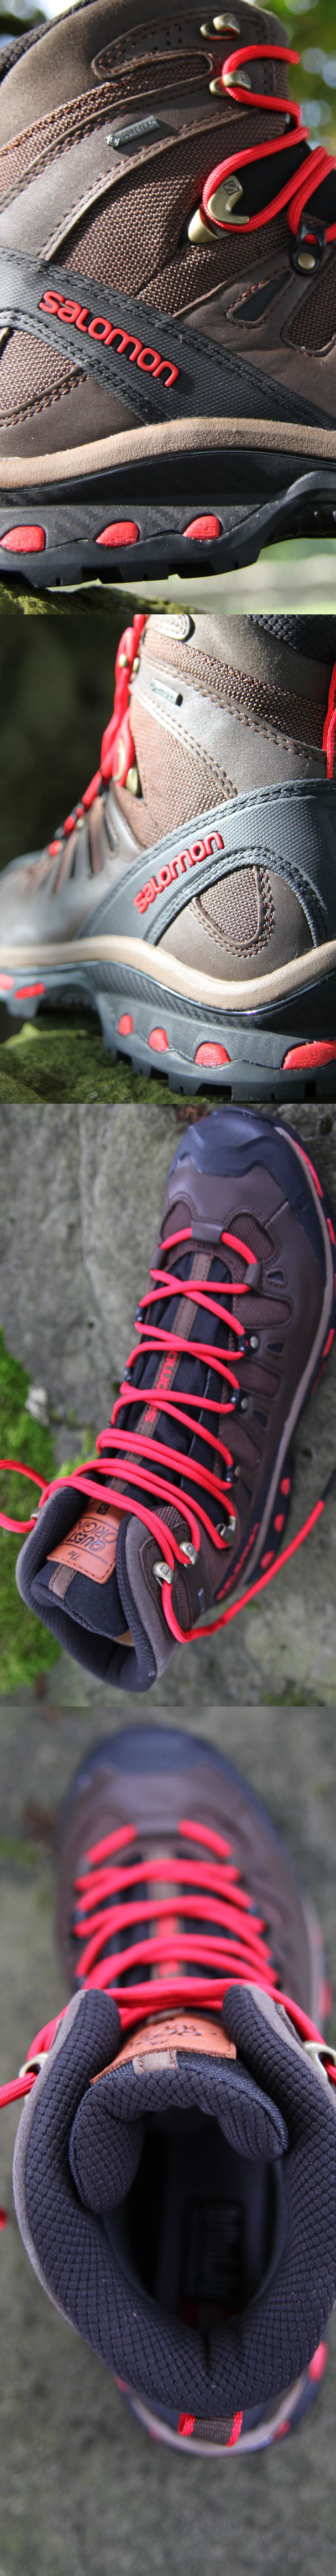 Salomon Men's Quest Origins GTX Hiking Boots - Sheer perfection in a walking boot - stunning design.  Comfortable as hell from the off - the Rolls Royce of walking boots - see the review for more info...